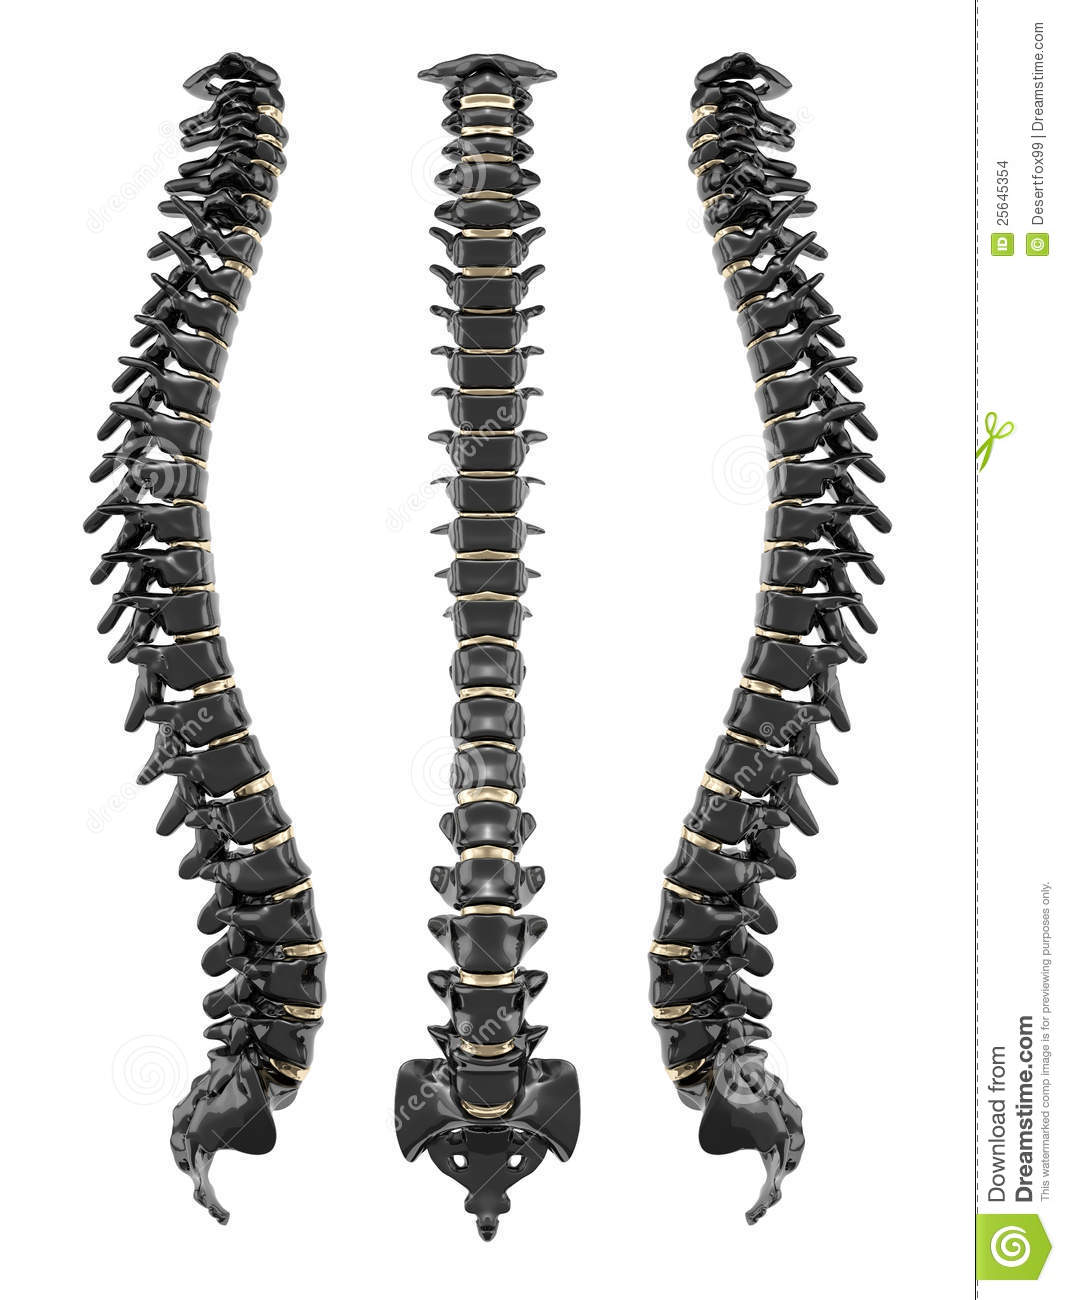 Human Spine Clipart